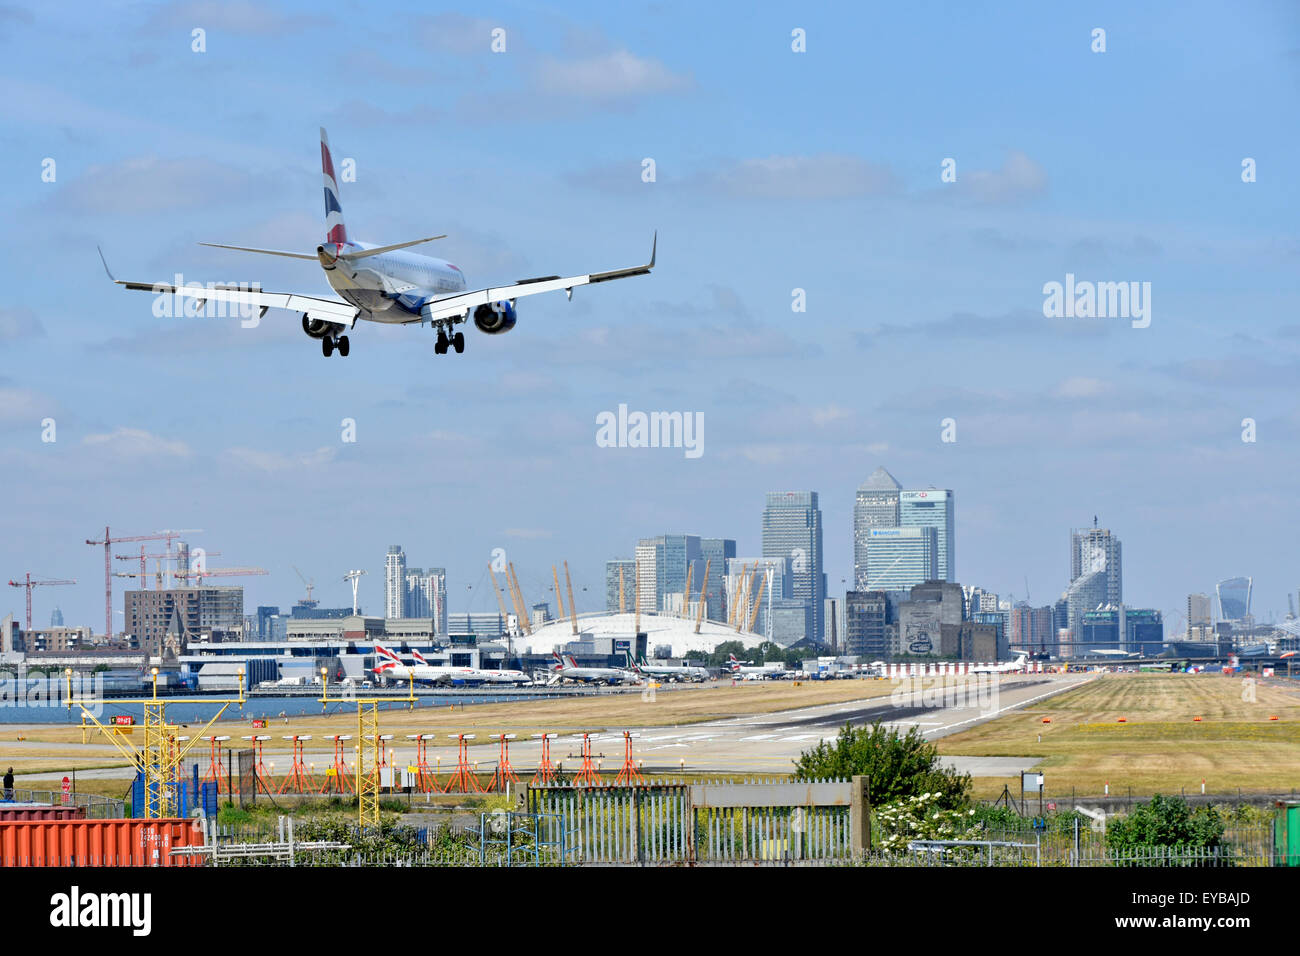 British Airways plane landing London City Airport Newham with O2 arena & Canary Wharf in London Docklands skyline - Stock Image